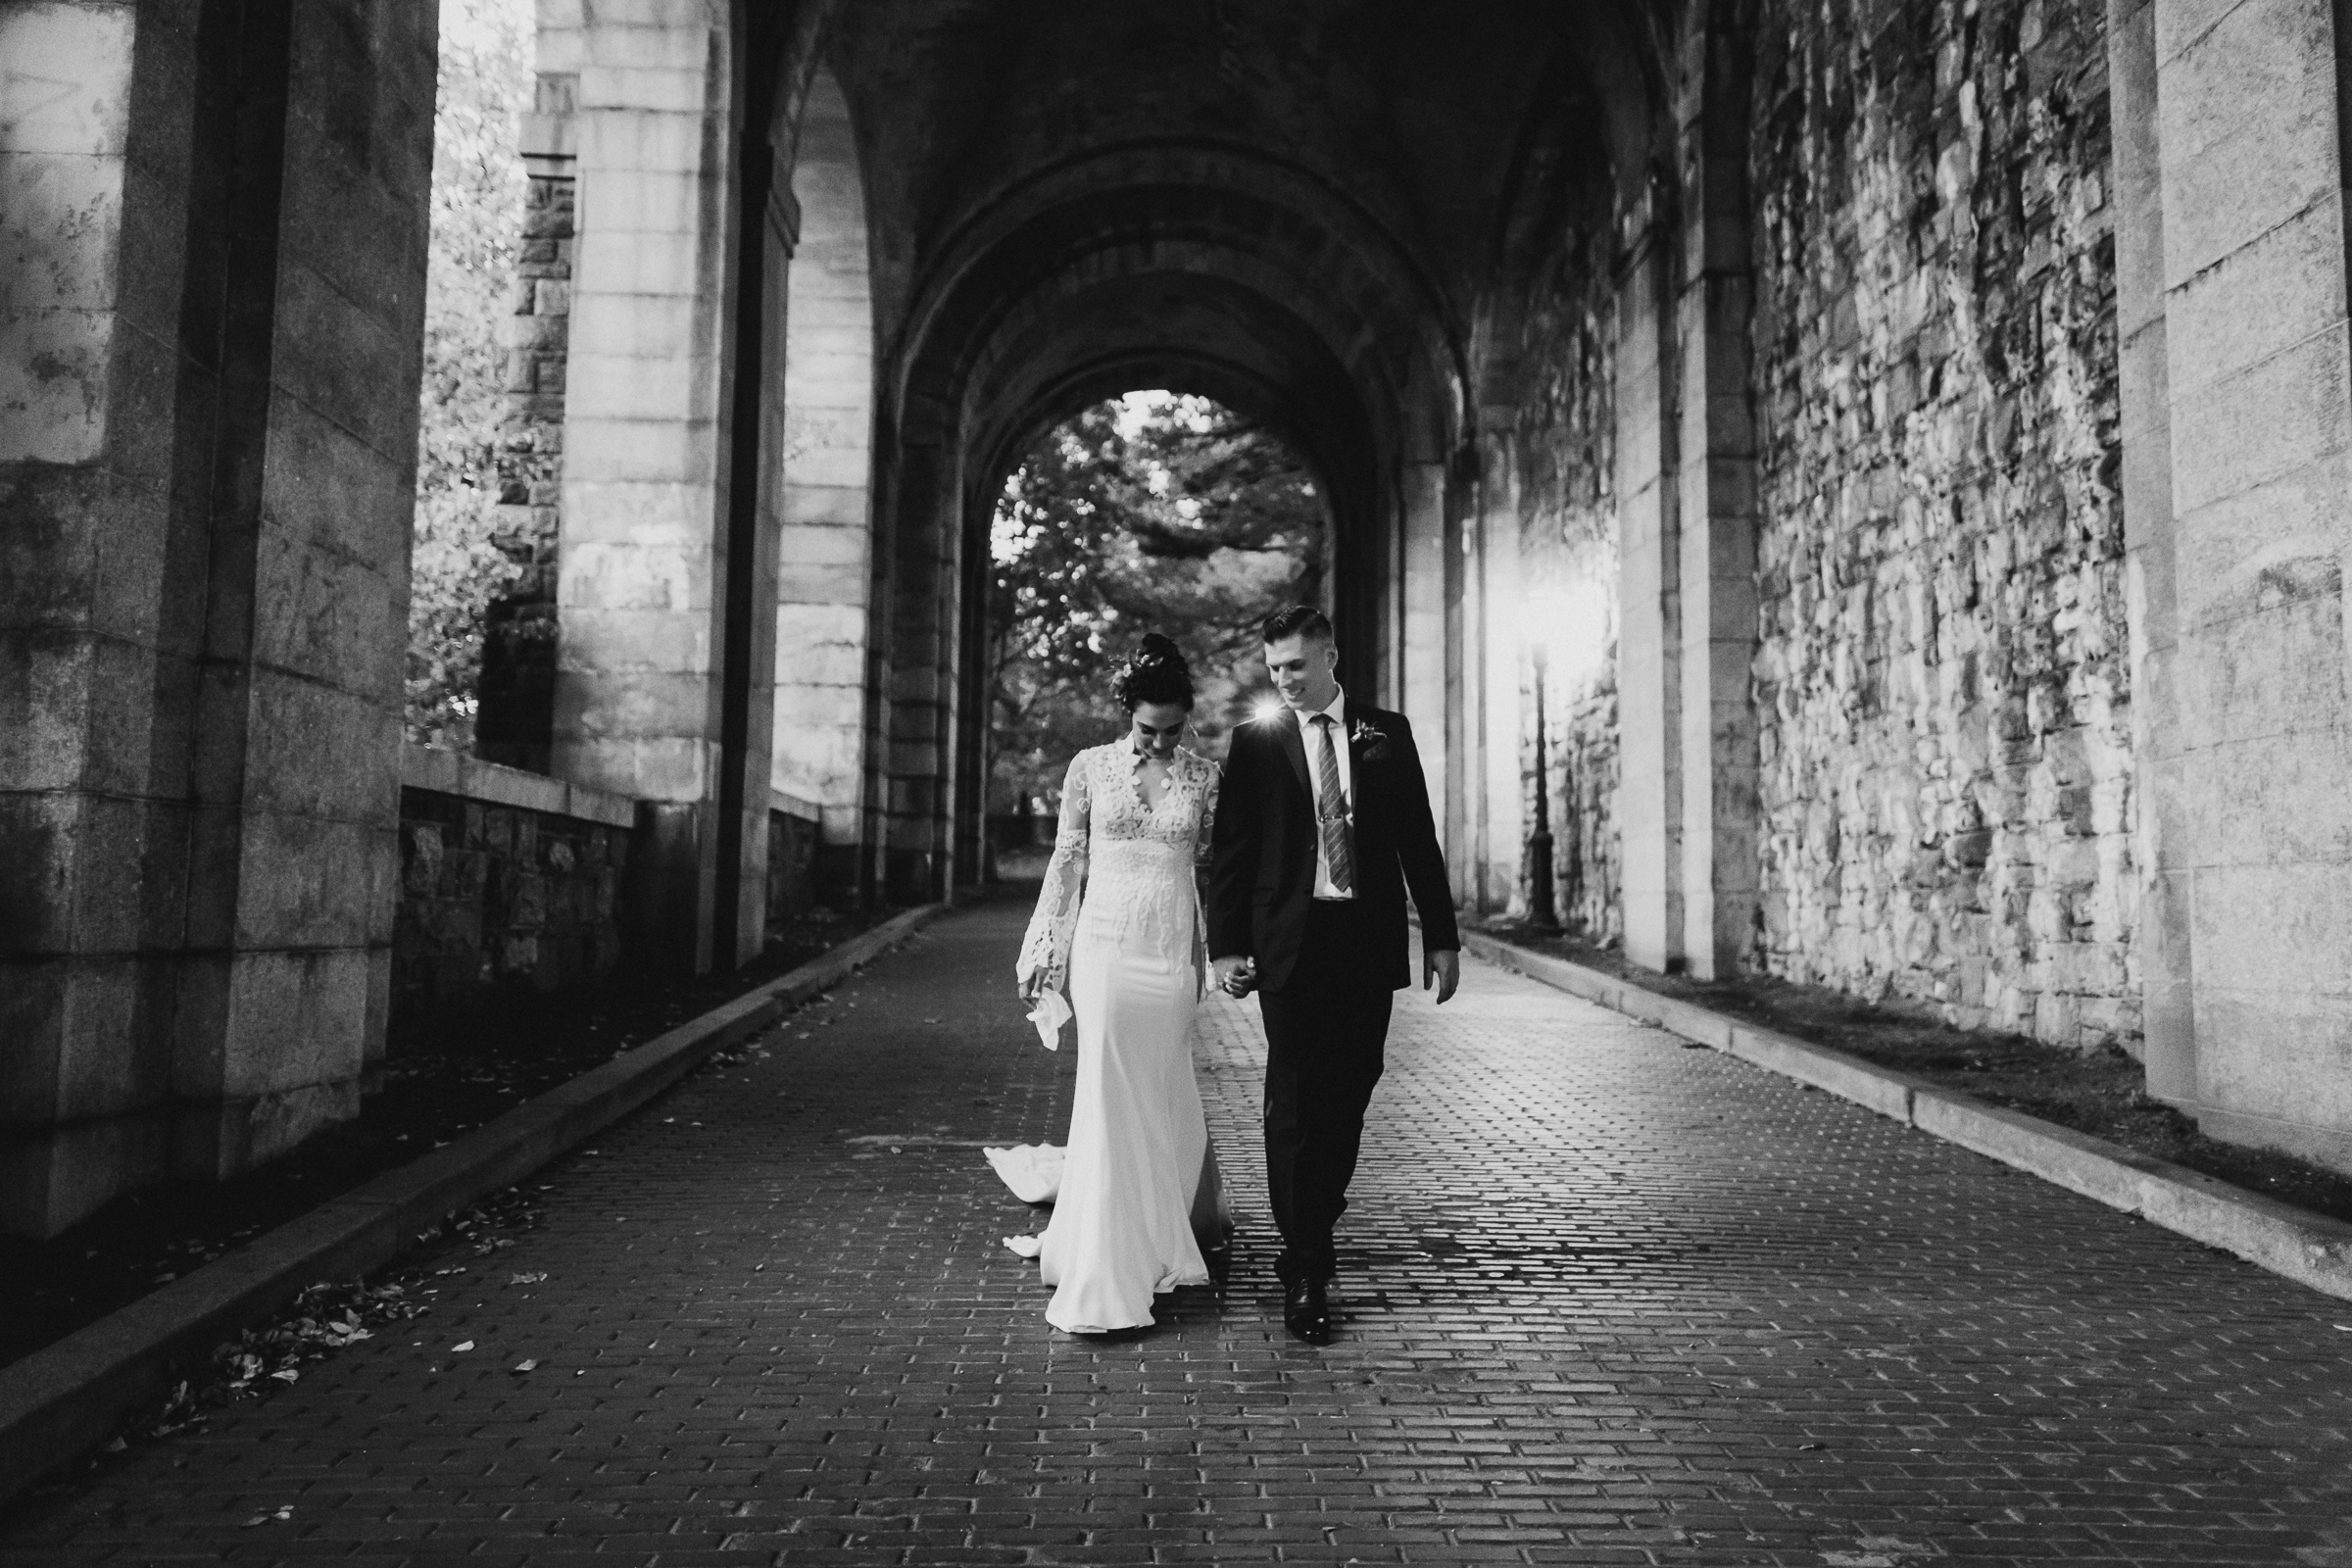 New-Leaf-Cafe-Fort-Tryon-Park-New-York-Documentary-Wedding-Photographer-83.jpg